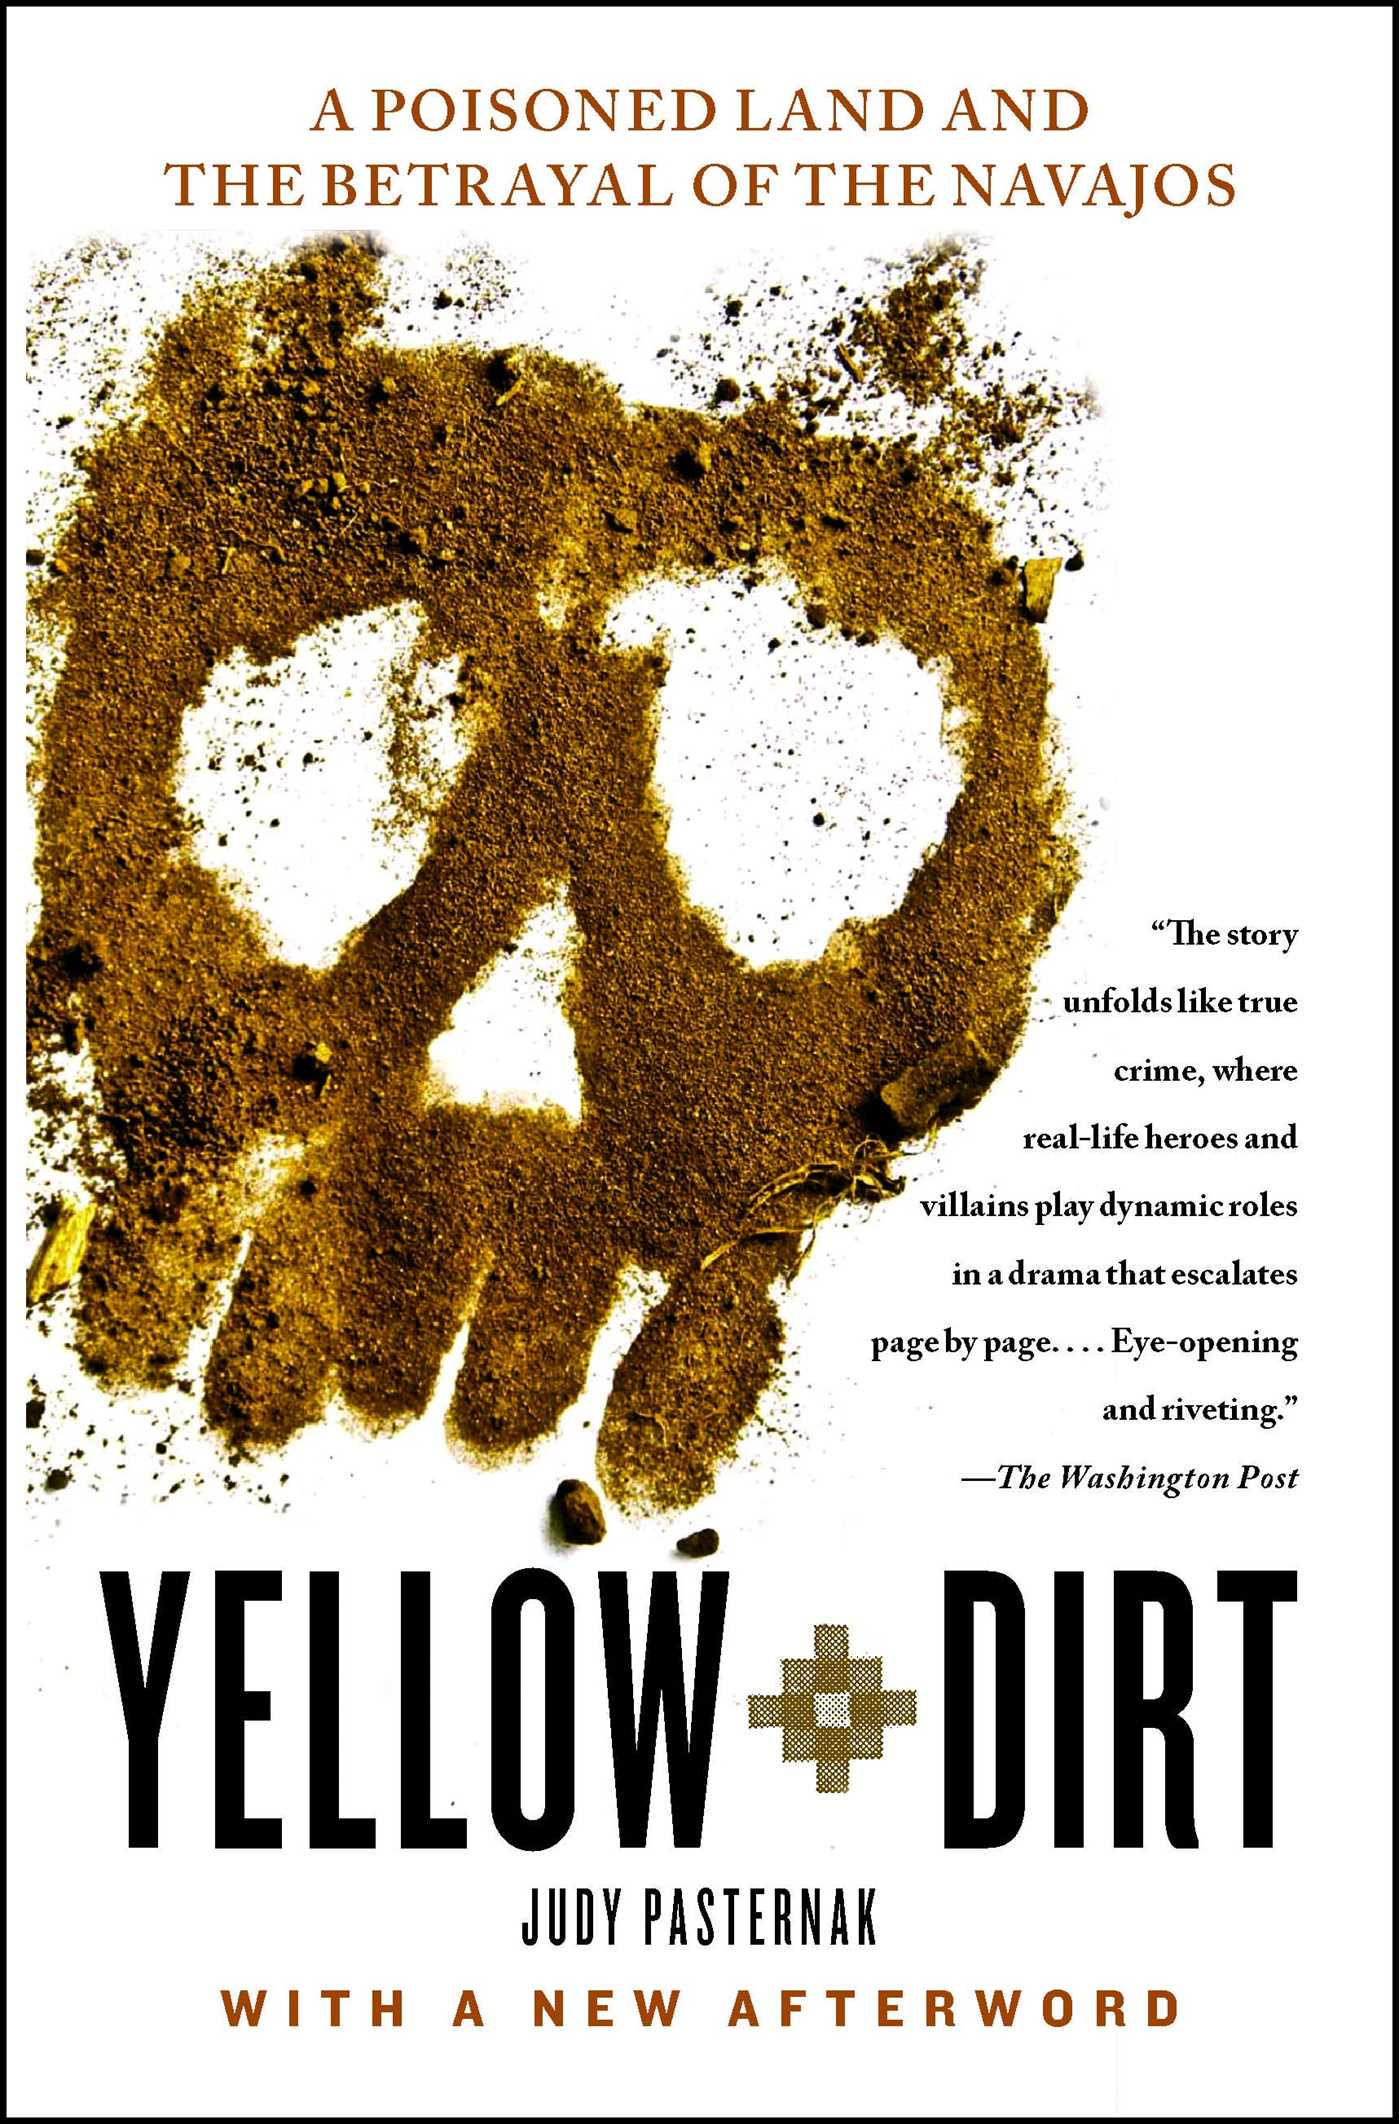 Yellow dirt 9781416594833 hr